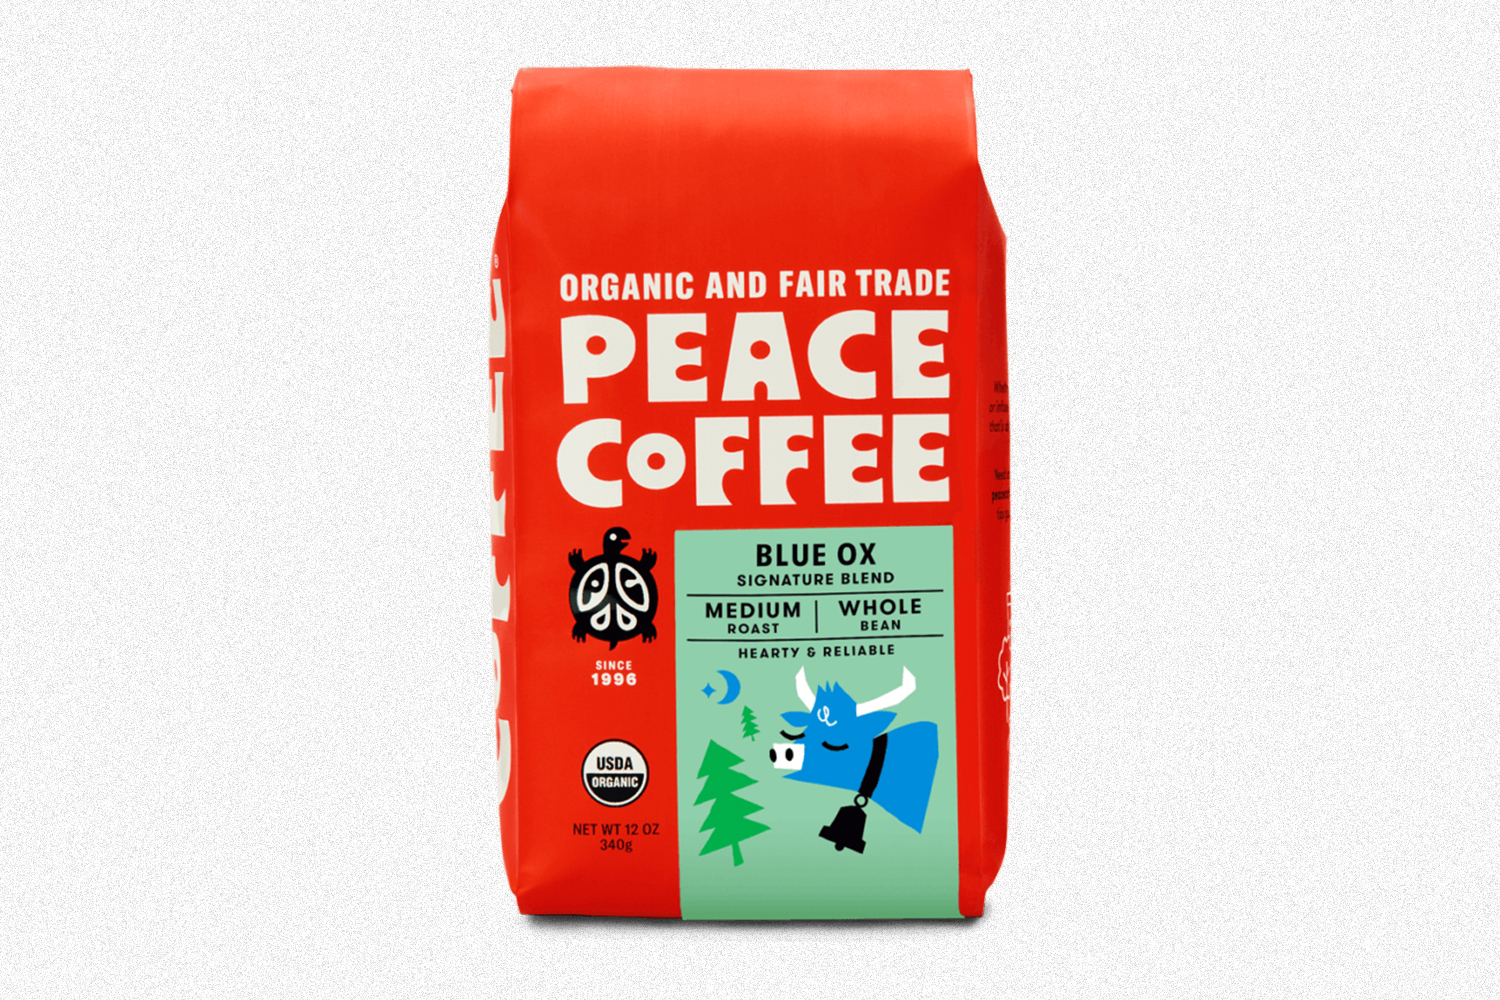 A bag of Blue Ox beans from Peace Coffee